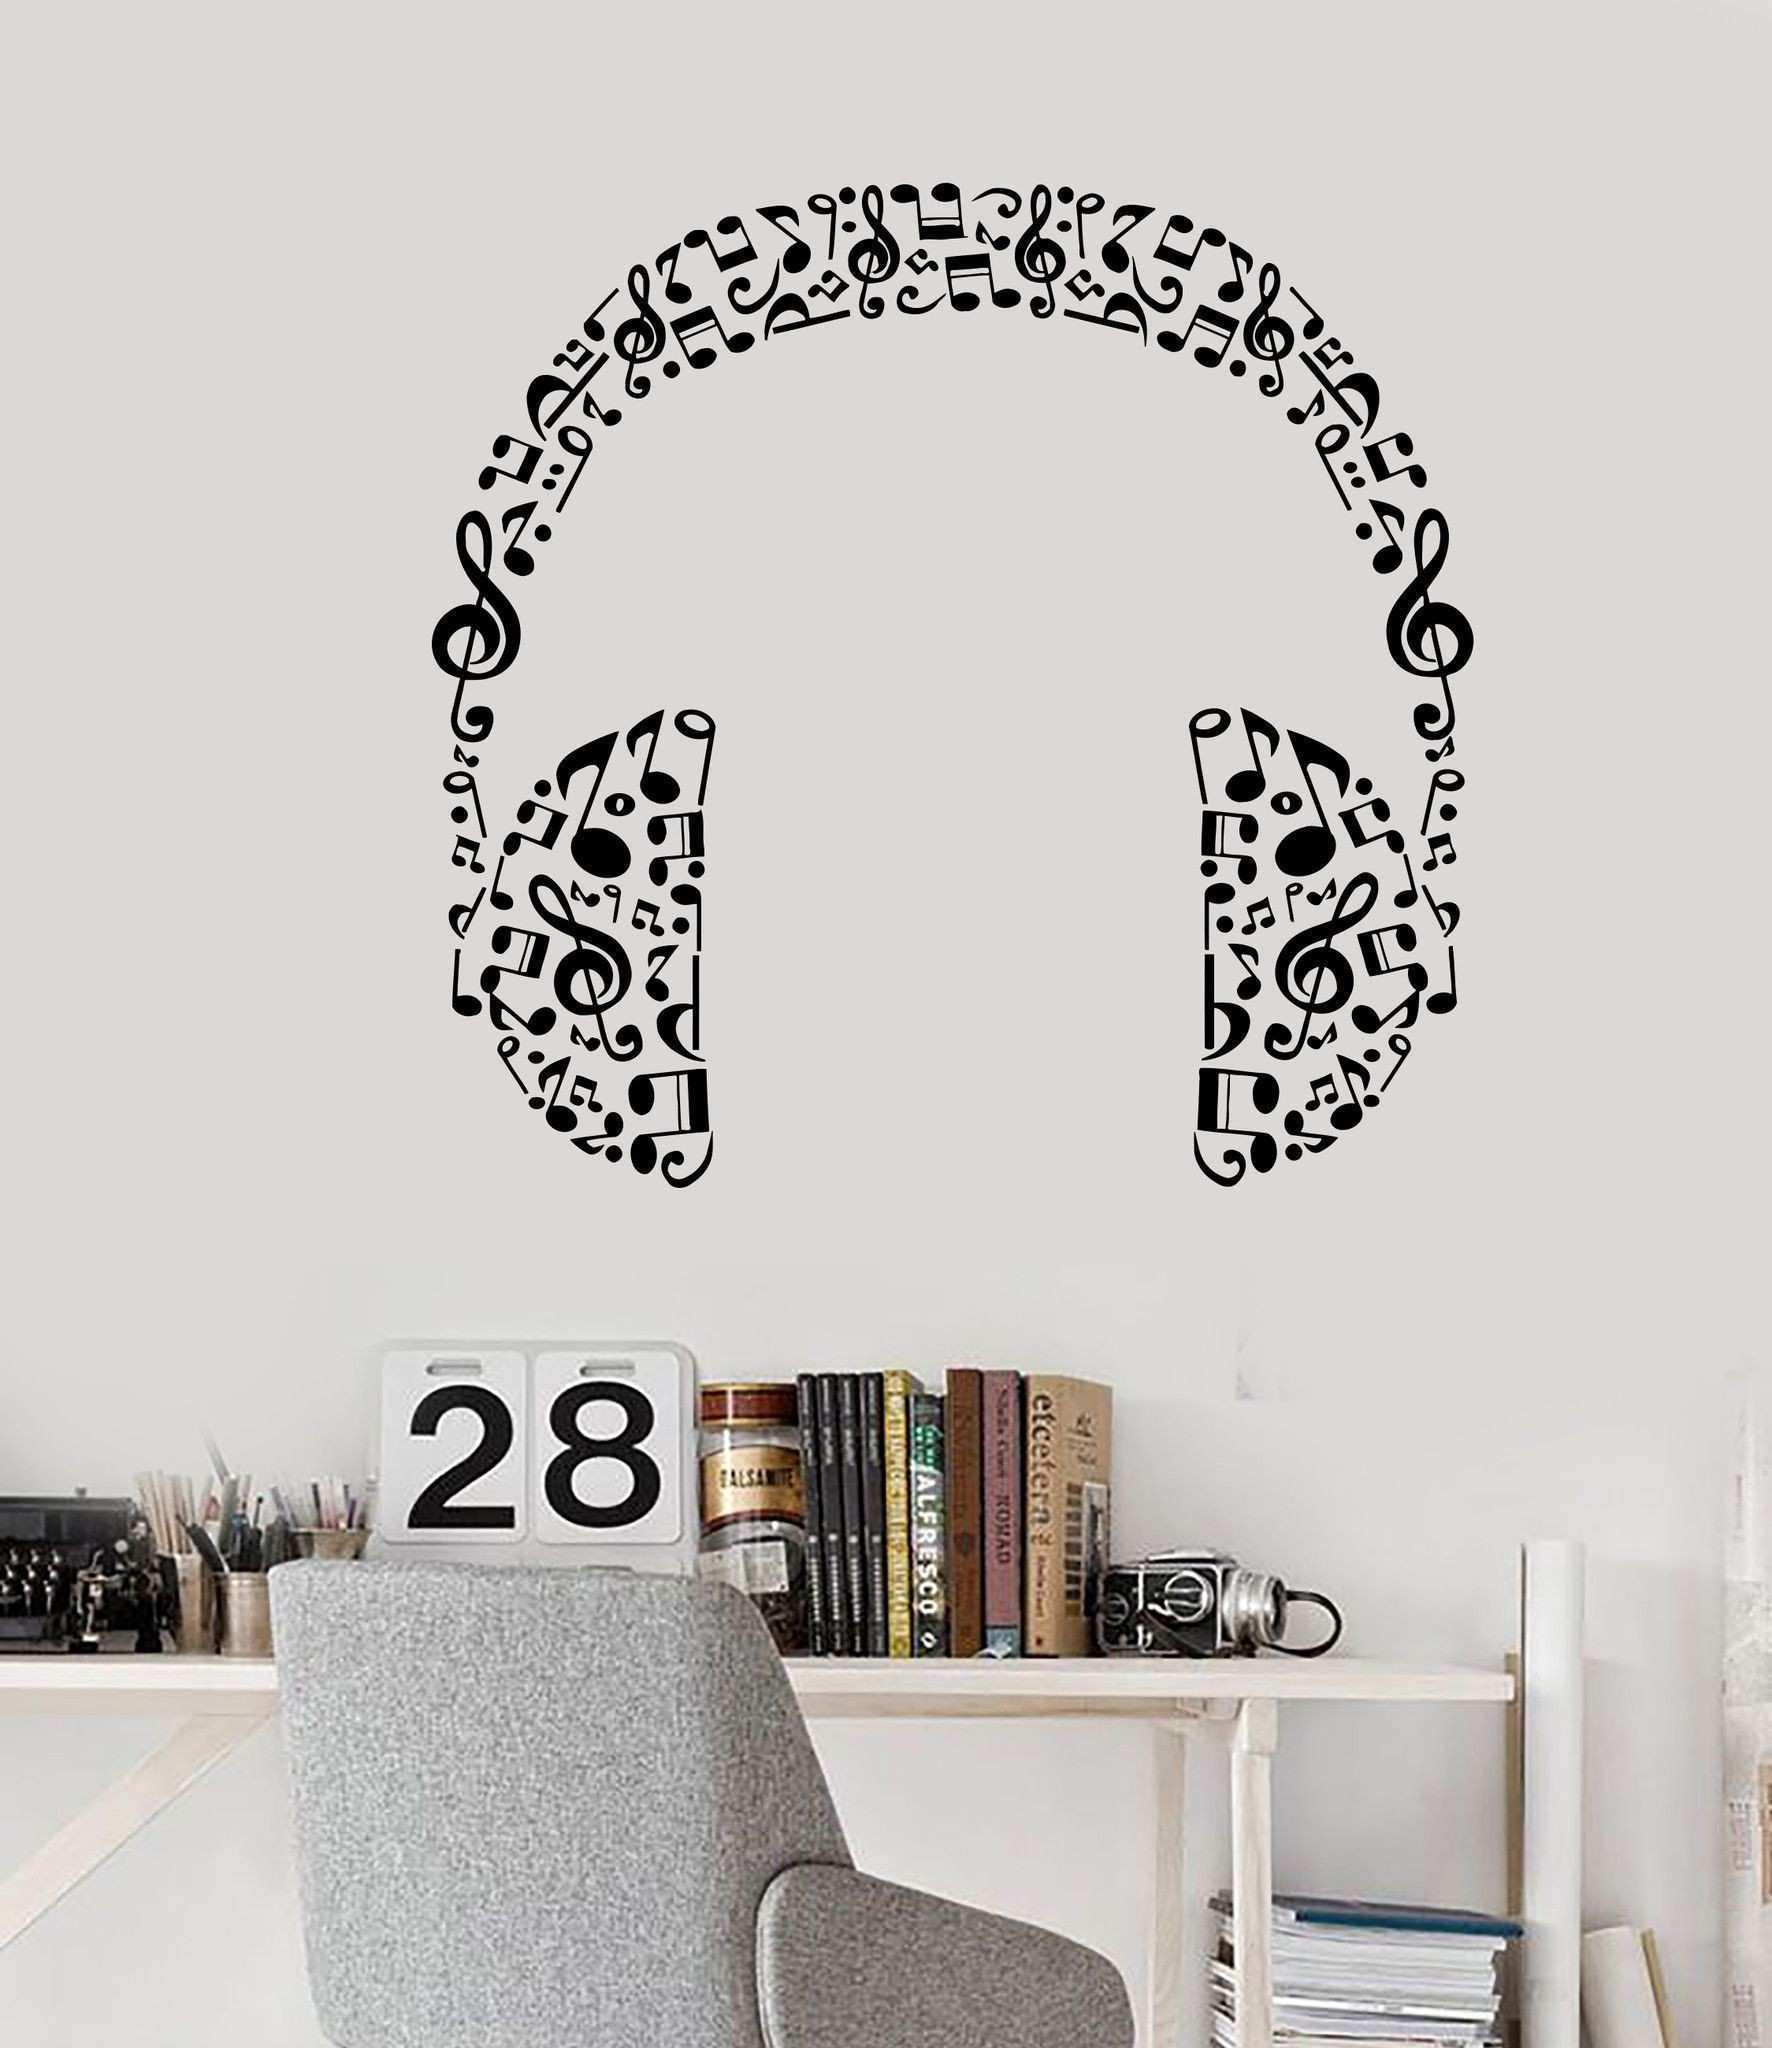 Leopard Print Decals for Walls Beautiful Vinyl Wall Decal Headphones Music Musical Room Art Stickers Unique